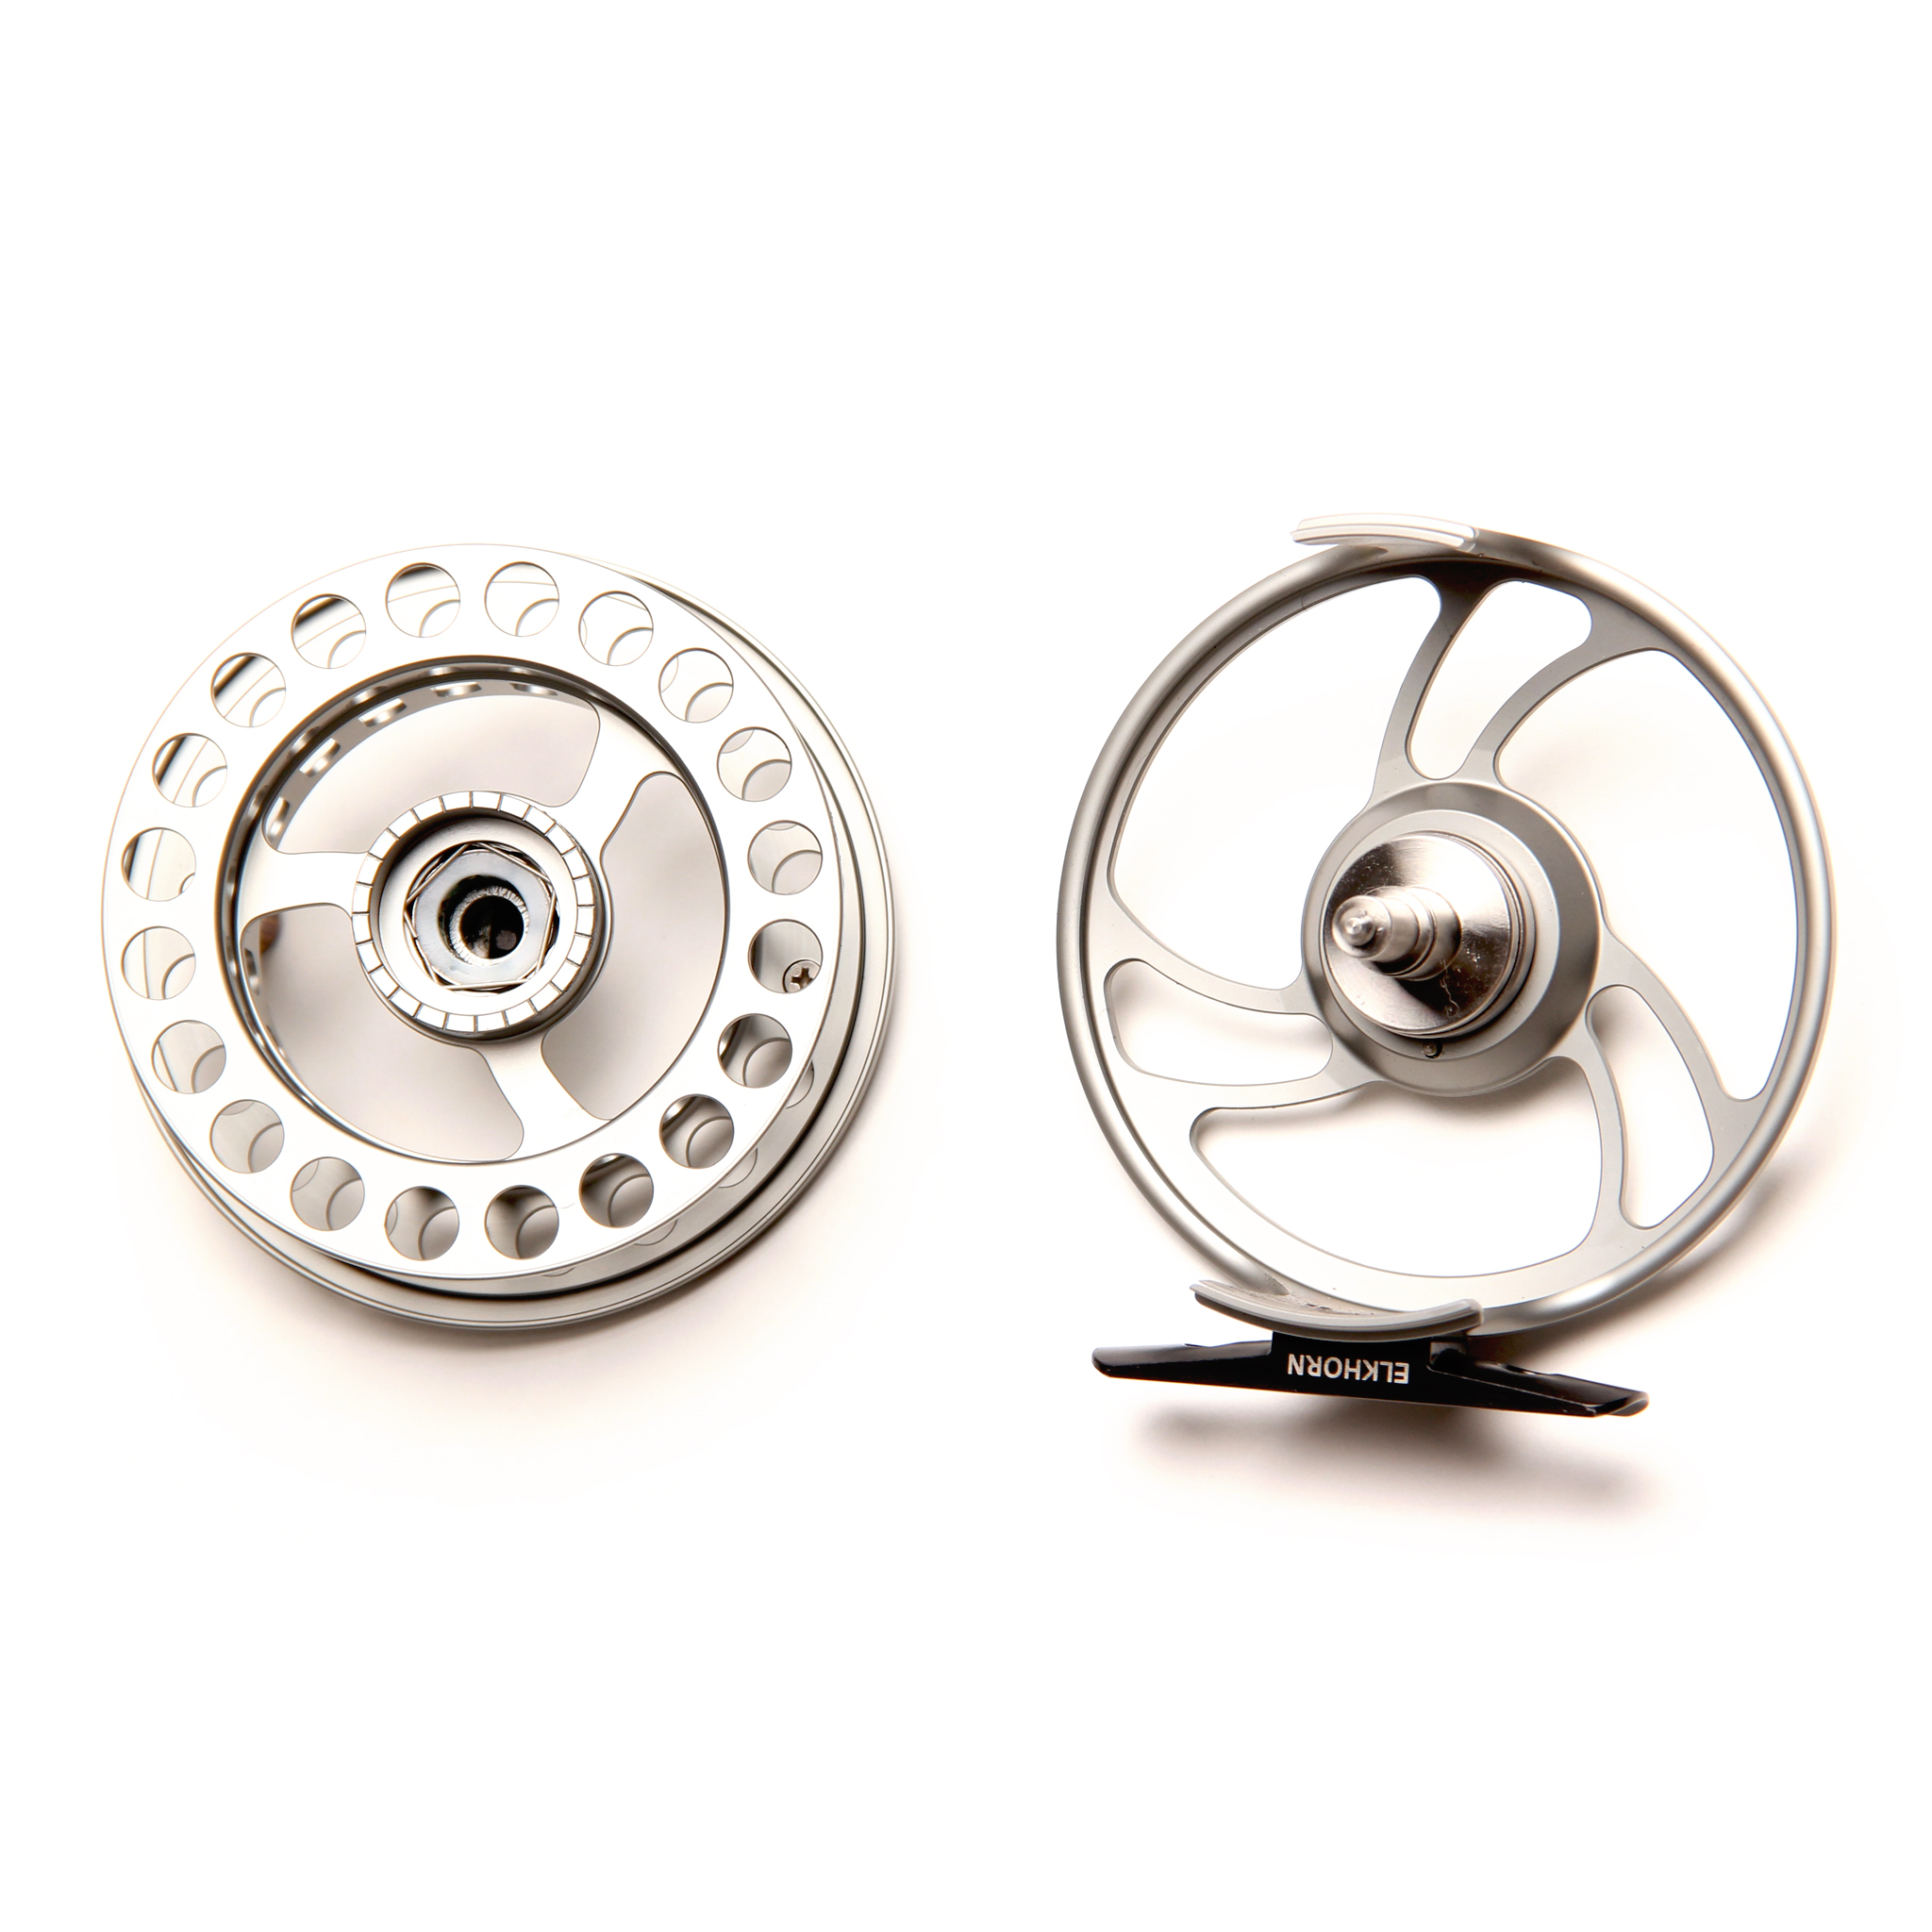 ELKHORN CRC SERIES SPARE SPOOLS-both-open